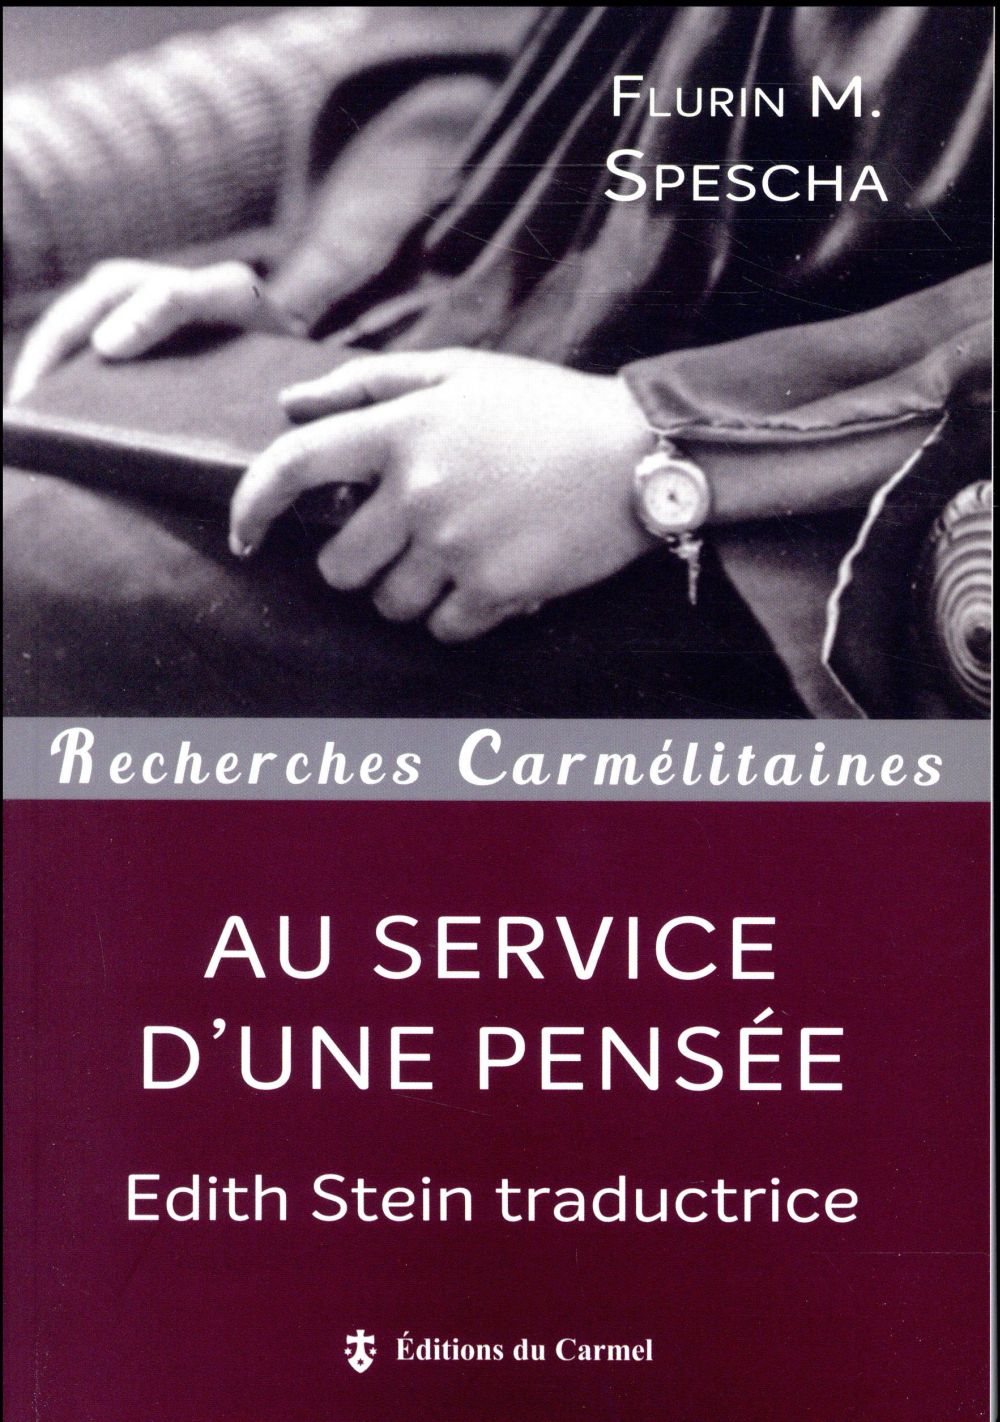 AU SERVICE D'UNE PENSEE - EDITH STEIN TRADUCTRICE